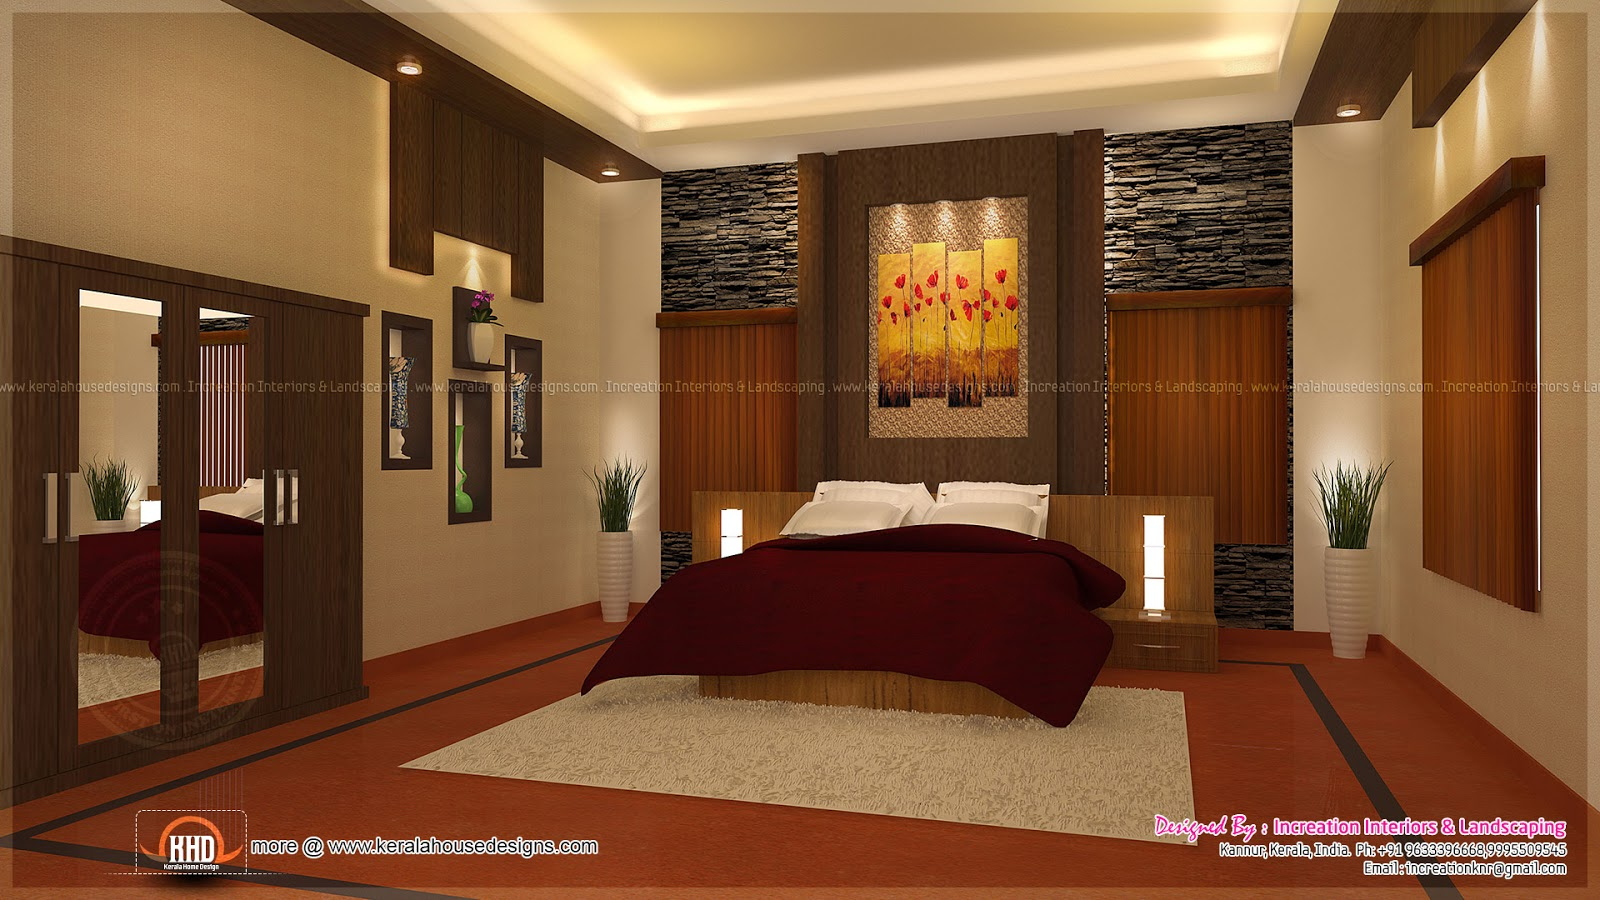 House interior ideas in 3d rendering kerala home design for Interior house design pictures